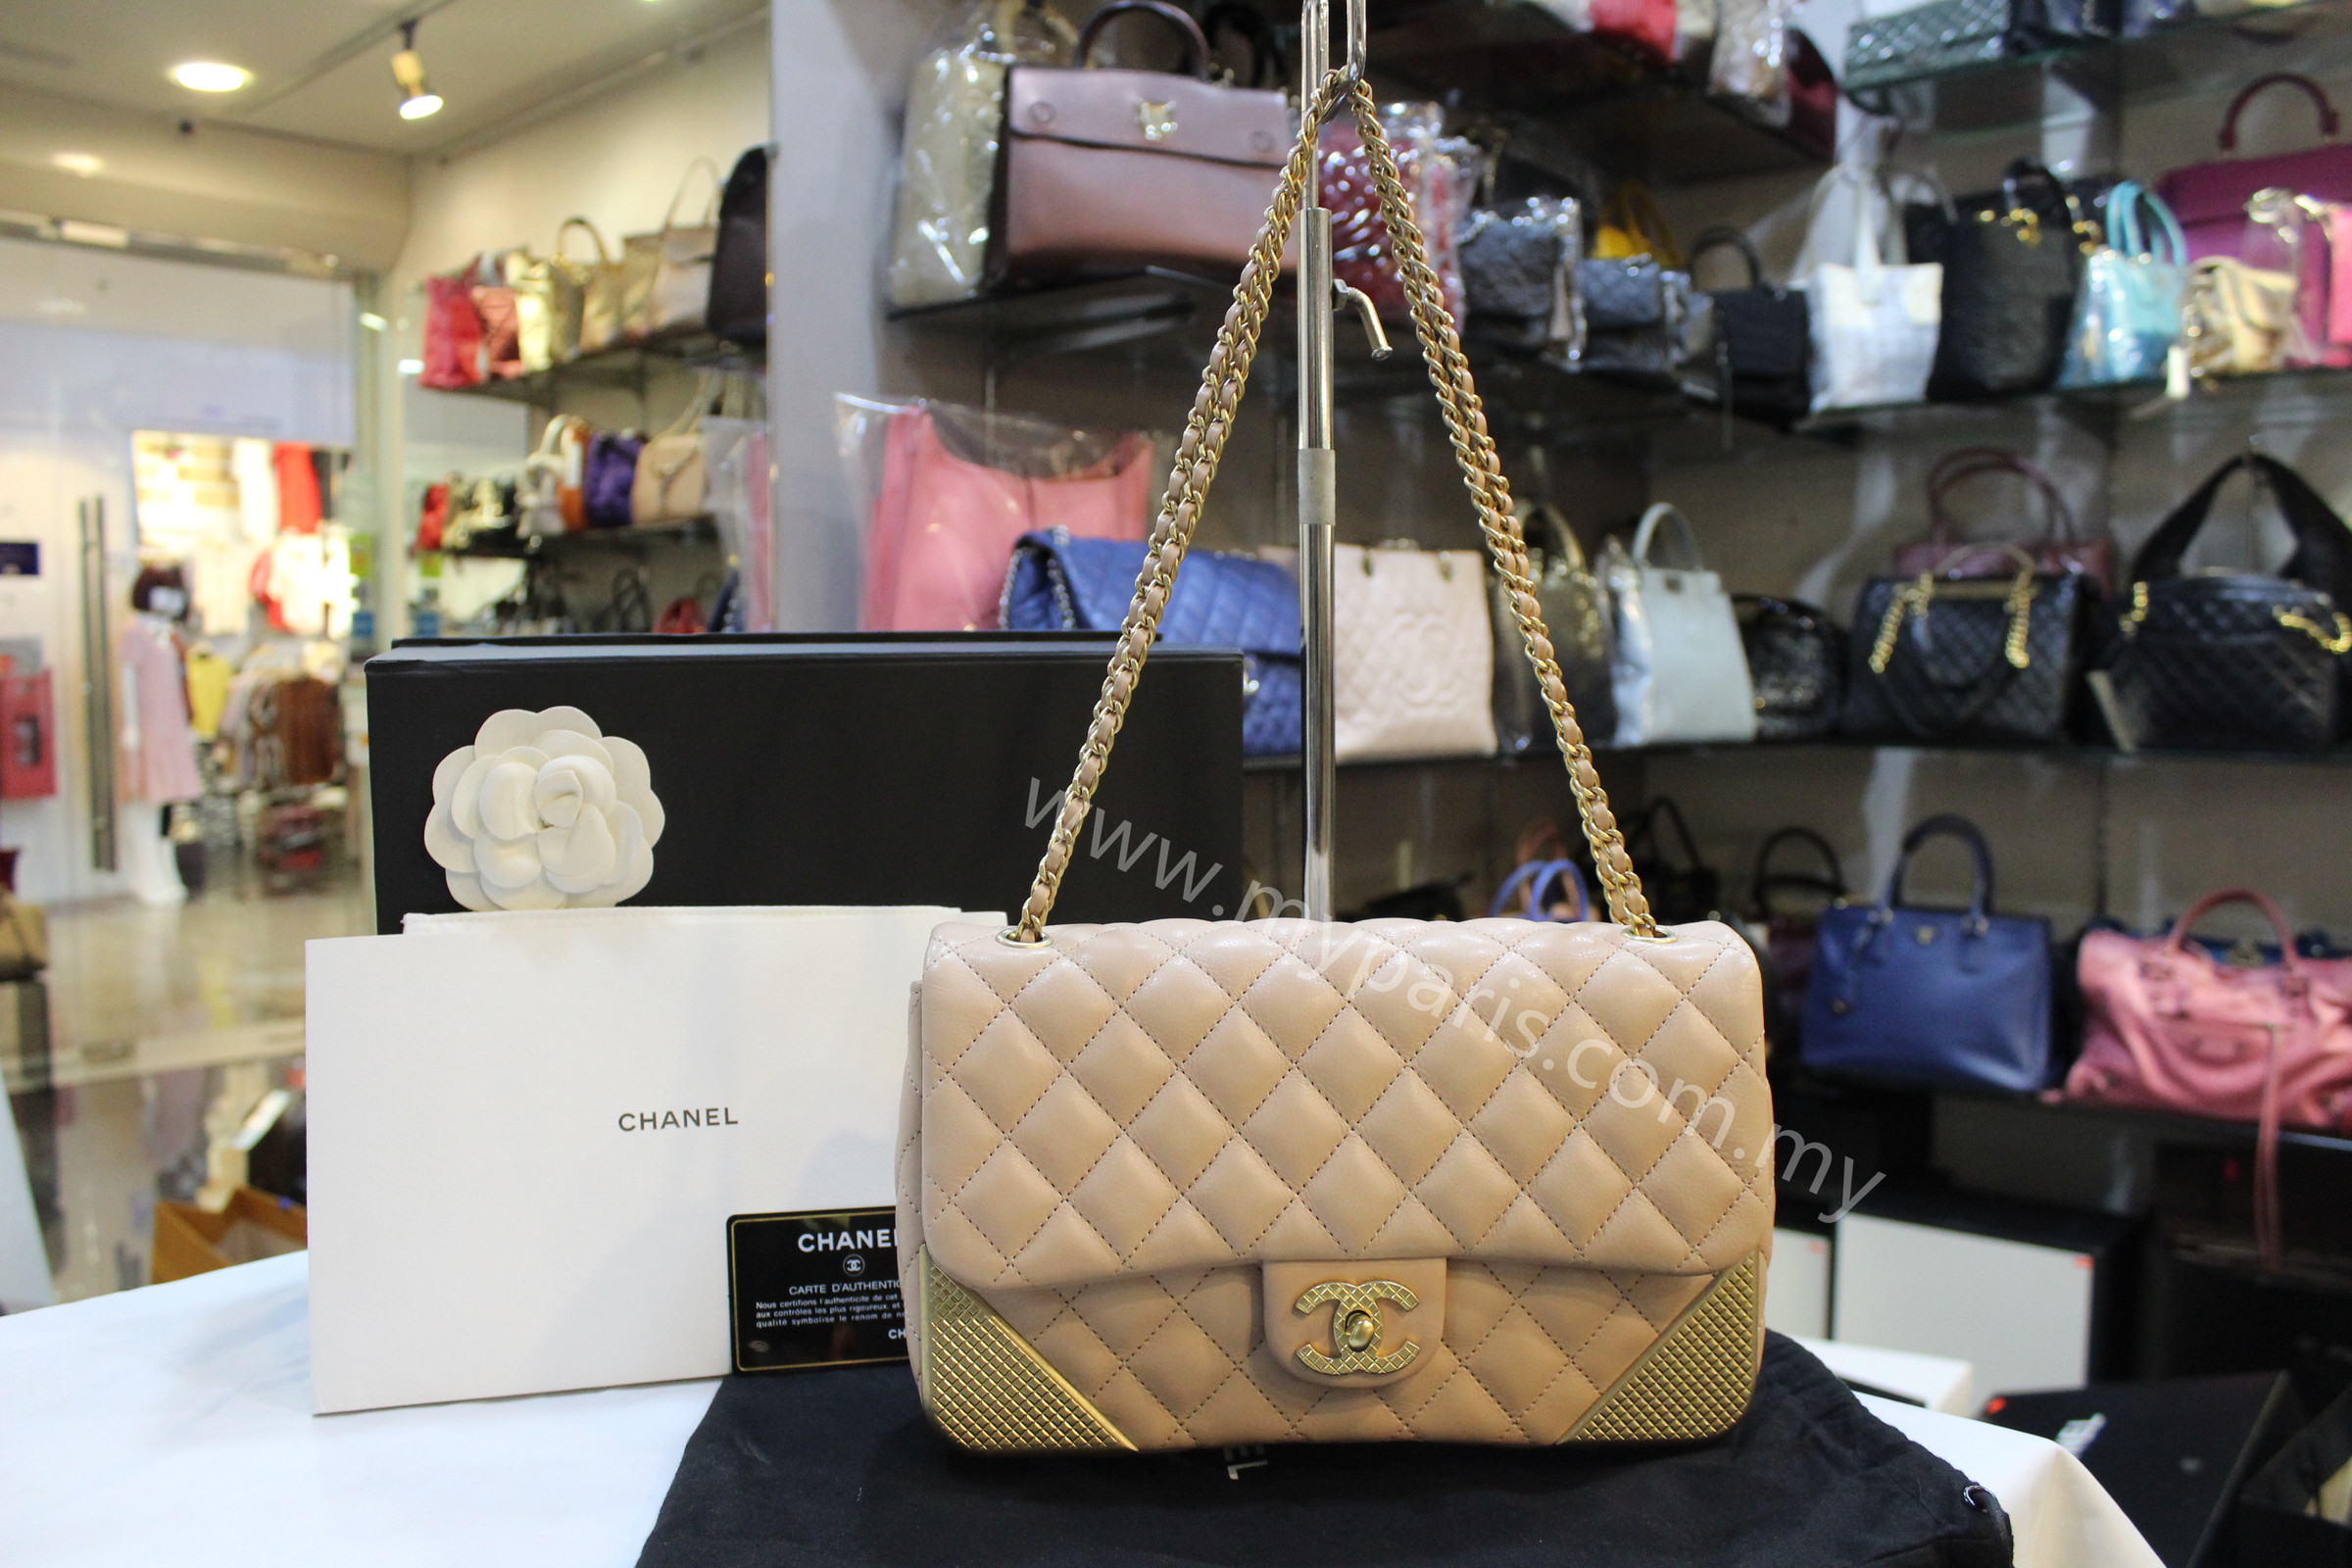 c3401ae548e9f1 Home › Chanel Quilted Calf Leather Rock The Corner Medium Flap Bag.  IMG_5133.JPG